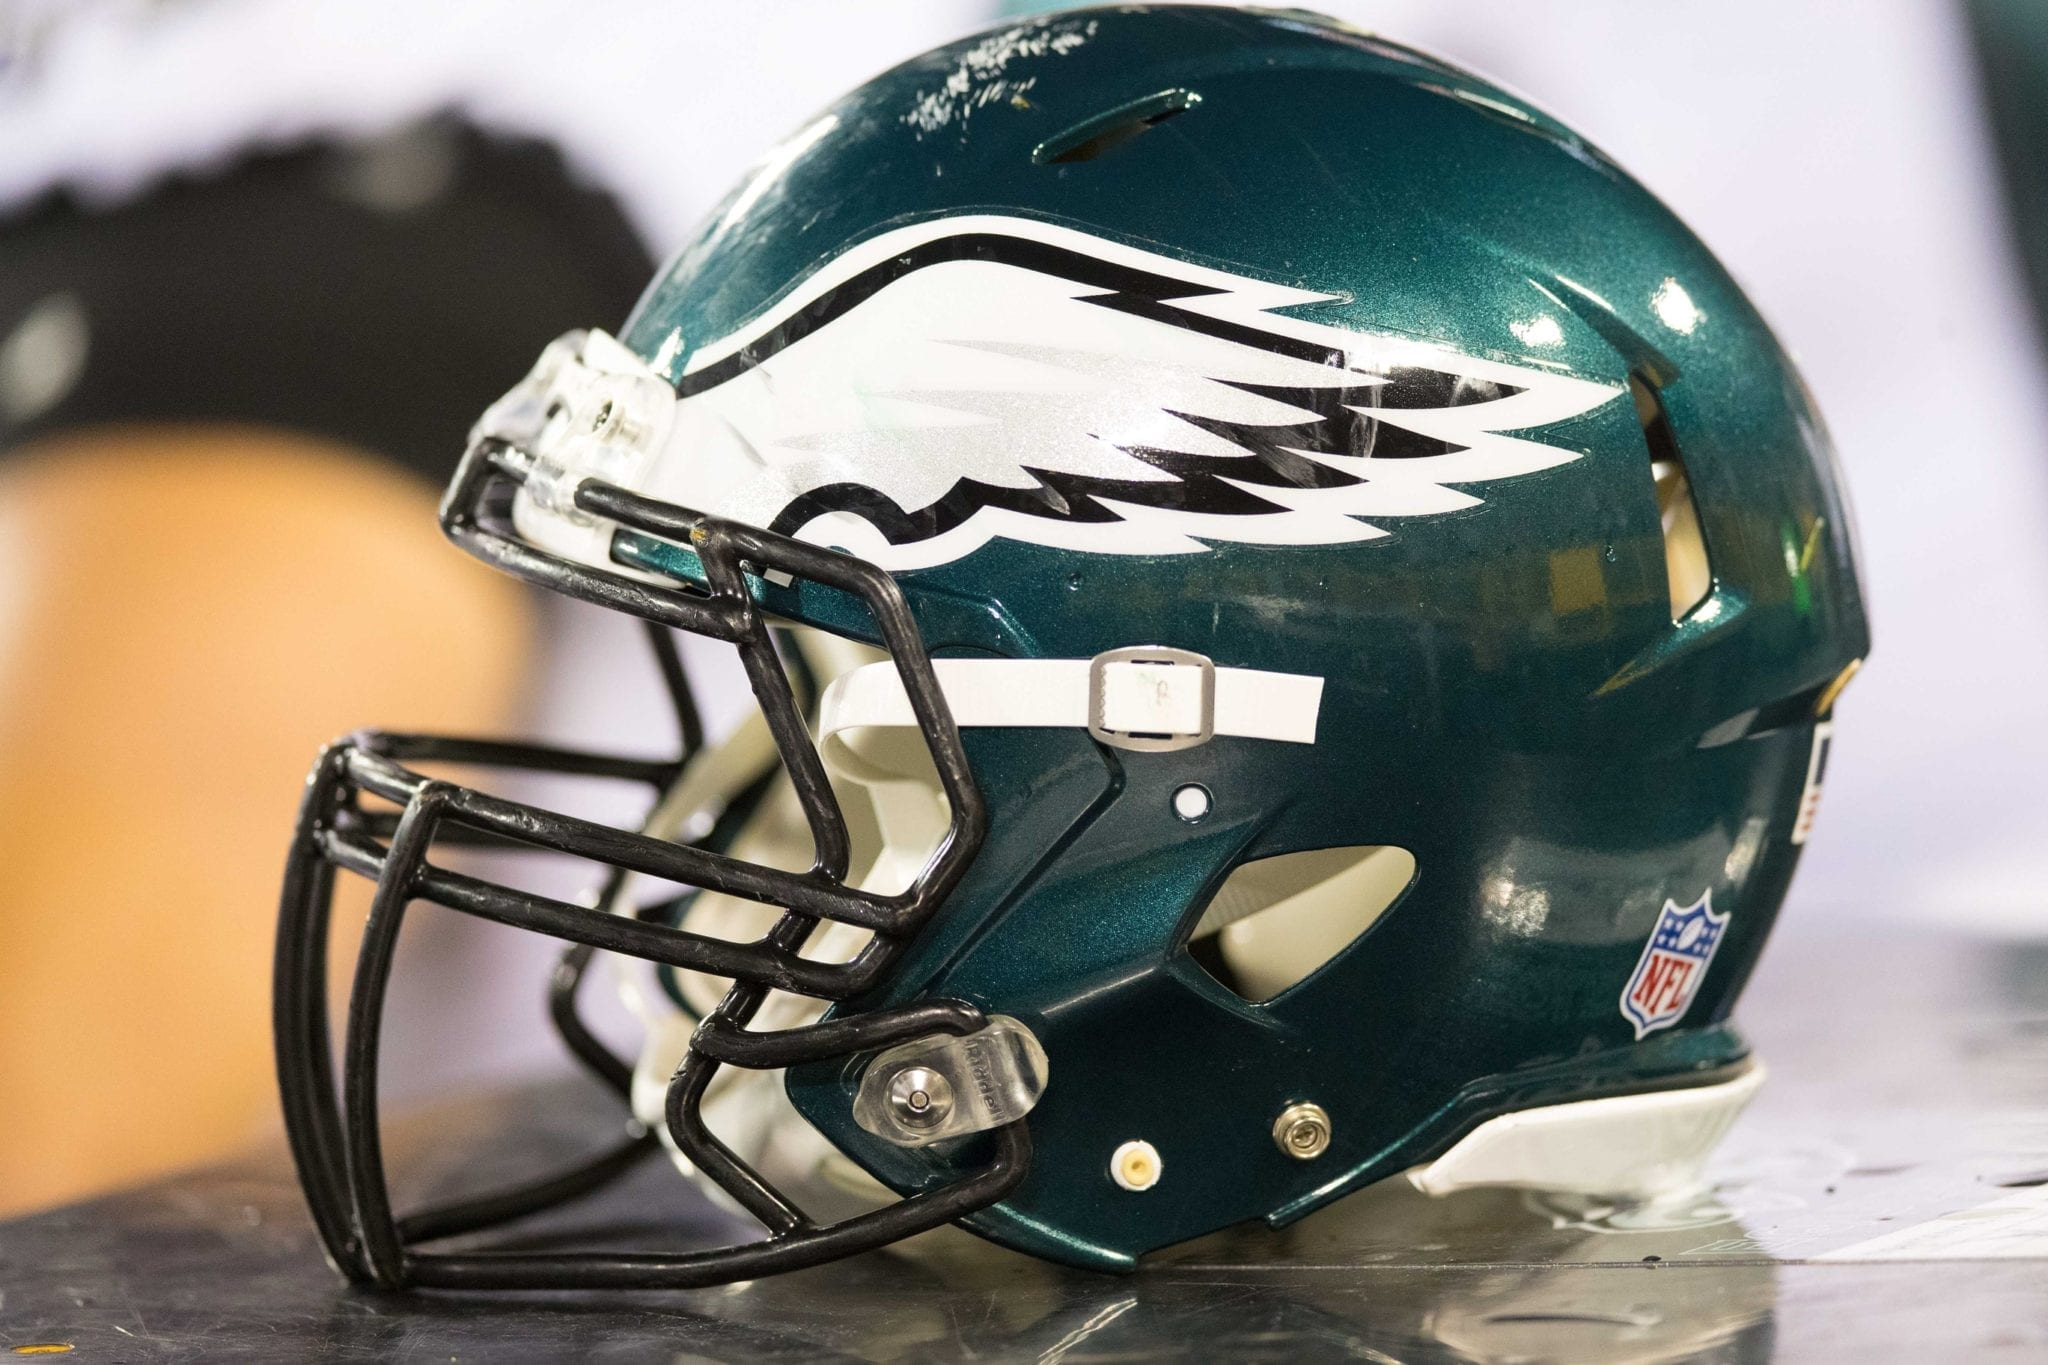 Eagles-helmet-4